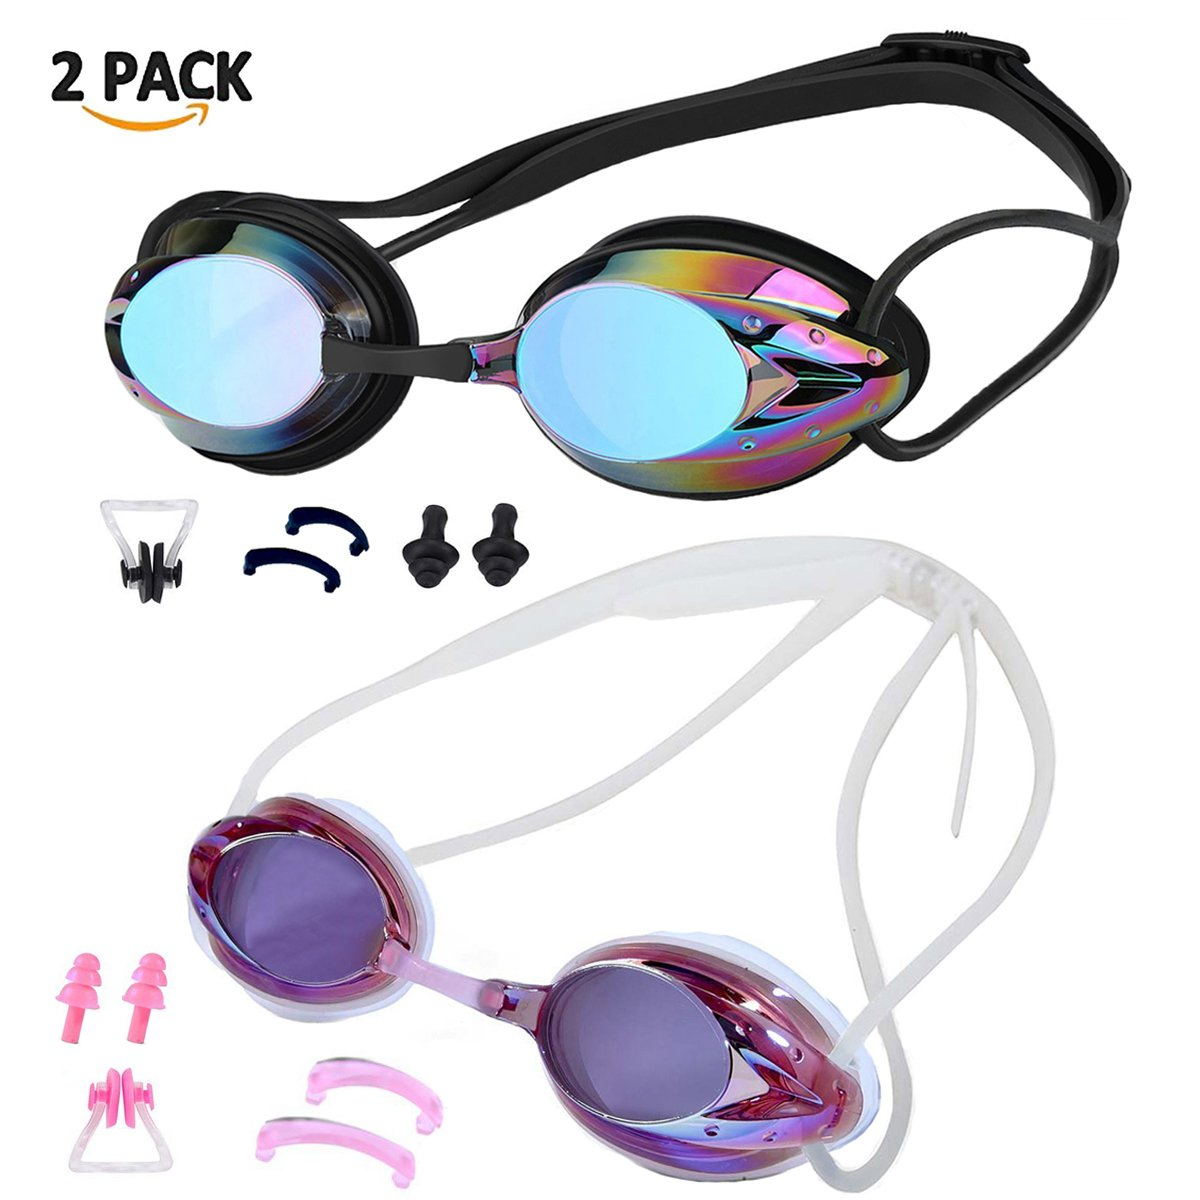 ZIMINGU No Leakage Protection with UV Anti-fog Swim Goggle, Swimming Goggles, Pack of 2 Adult Nose Clip Silicone Earplugs Water Glasses with Free Case Cover For Men Women Children ZIMINGU Swim Goggles